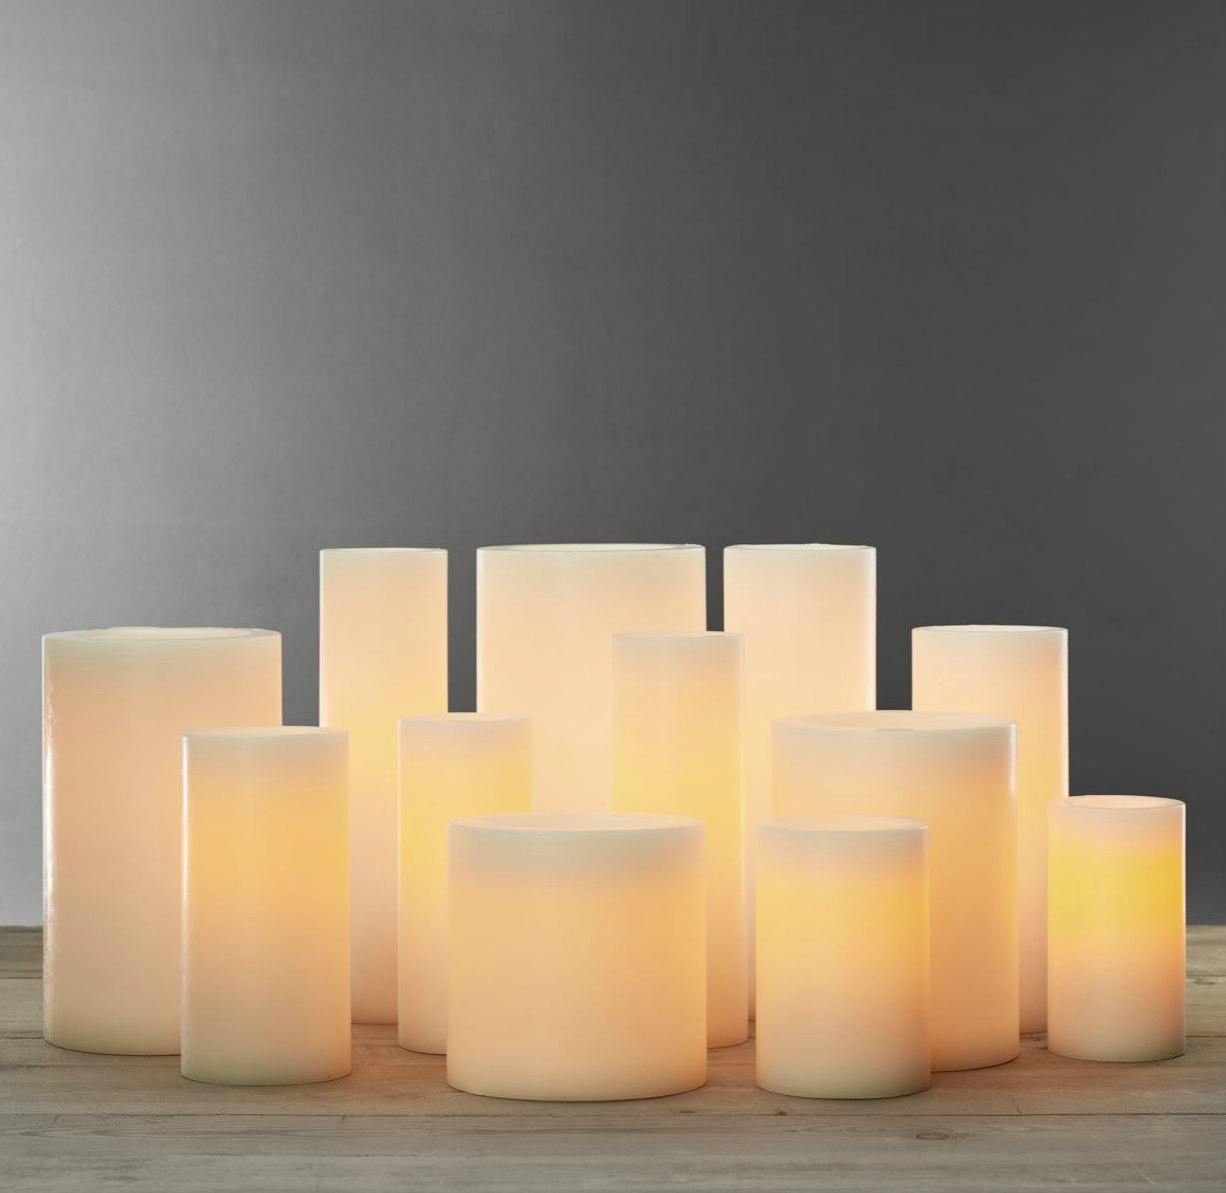 Flameless pillar candles from Restoration Hardware